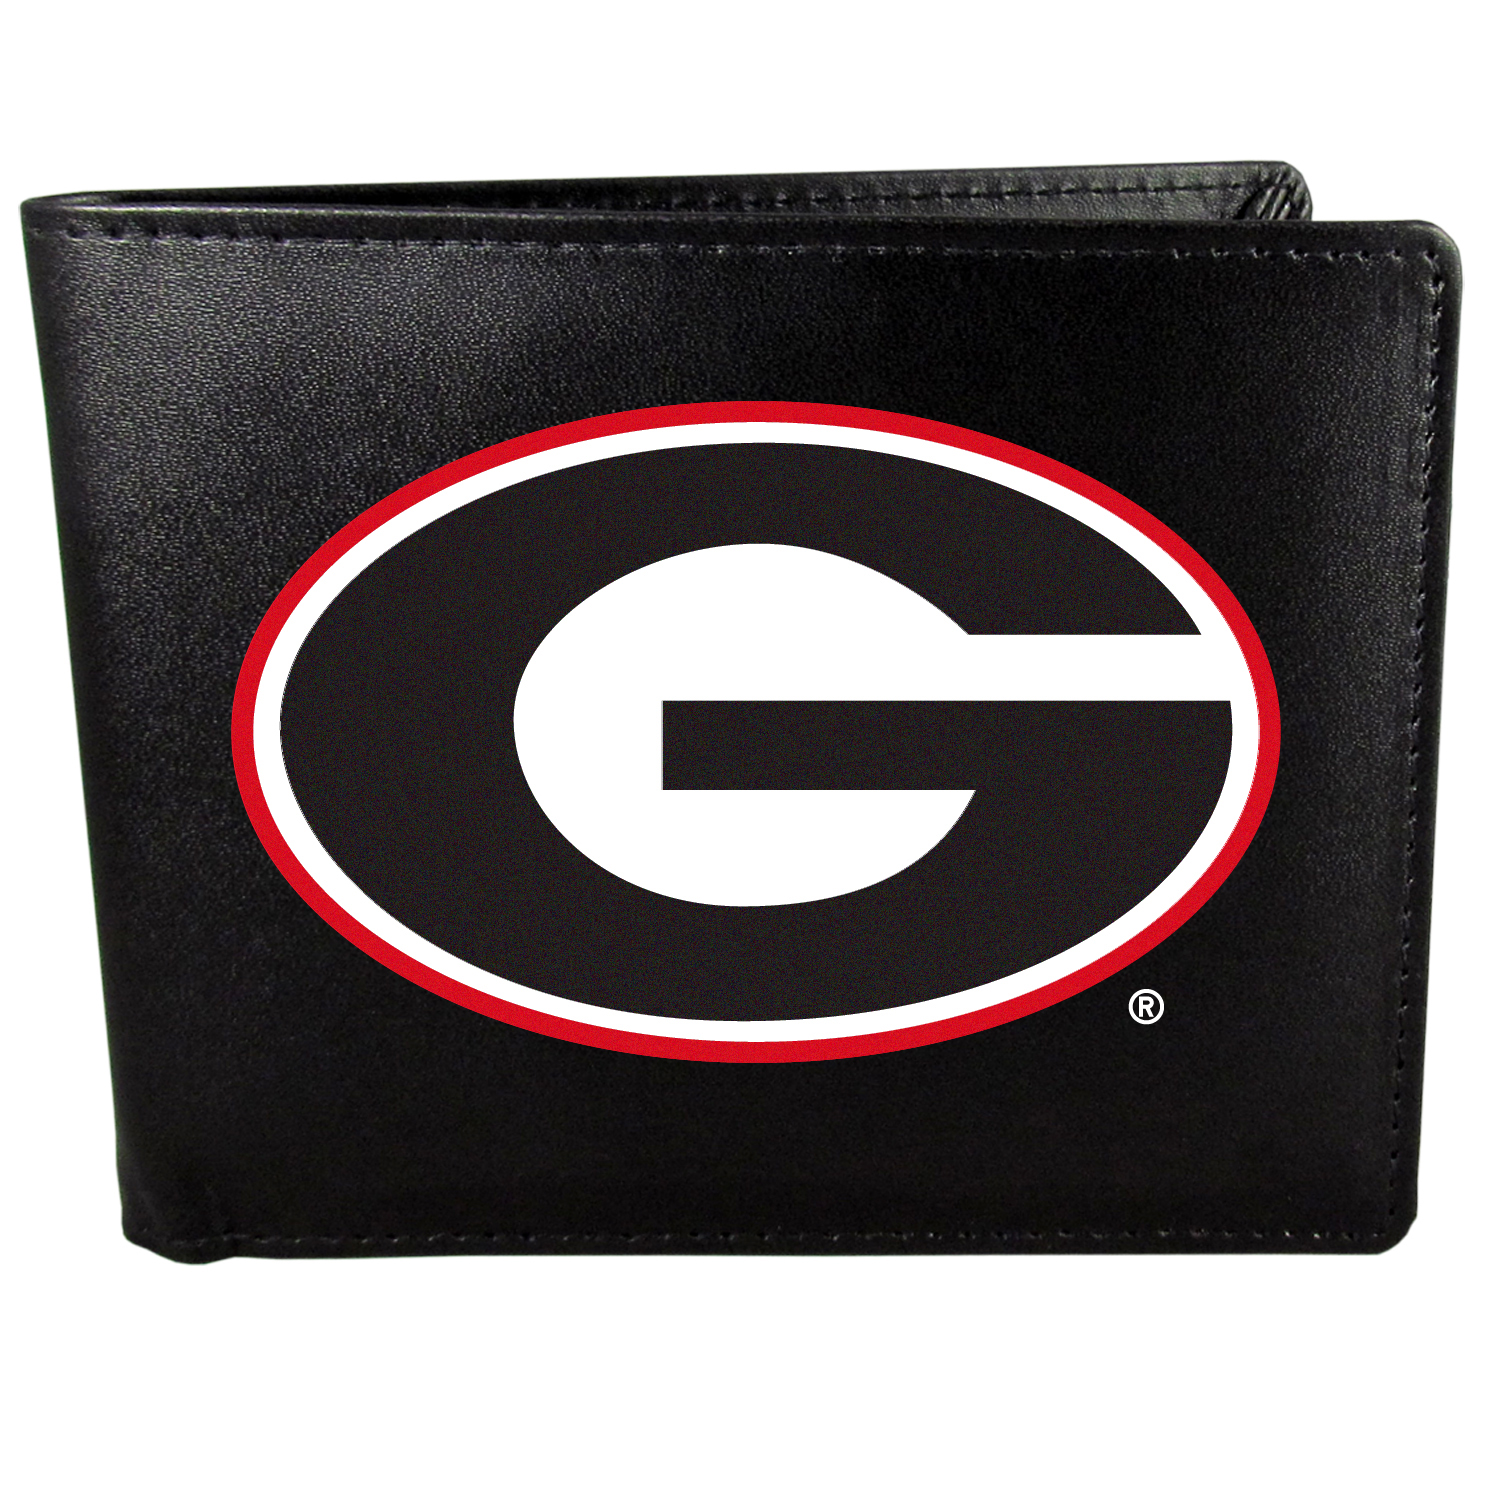 Georgia Bulldogs Bi-fold Wallet Large Logo - Sports fans do not have to sacrifice style with this classic bi-fold wallet that sports the Georgia Bulldogs?extra large logo. This men's fashion accessory has a leather grain look and expert craftmanship for a quality wallet at a great price. The wallet features inner credit card slots, windowed ID slot and a large billfold pocket. The front of the wallet features a printed team logo.